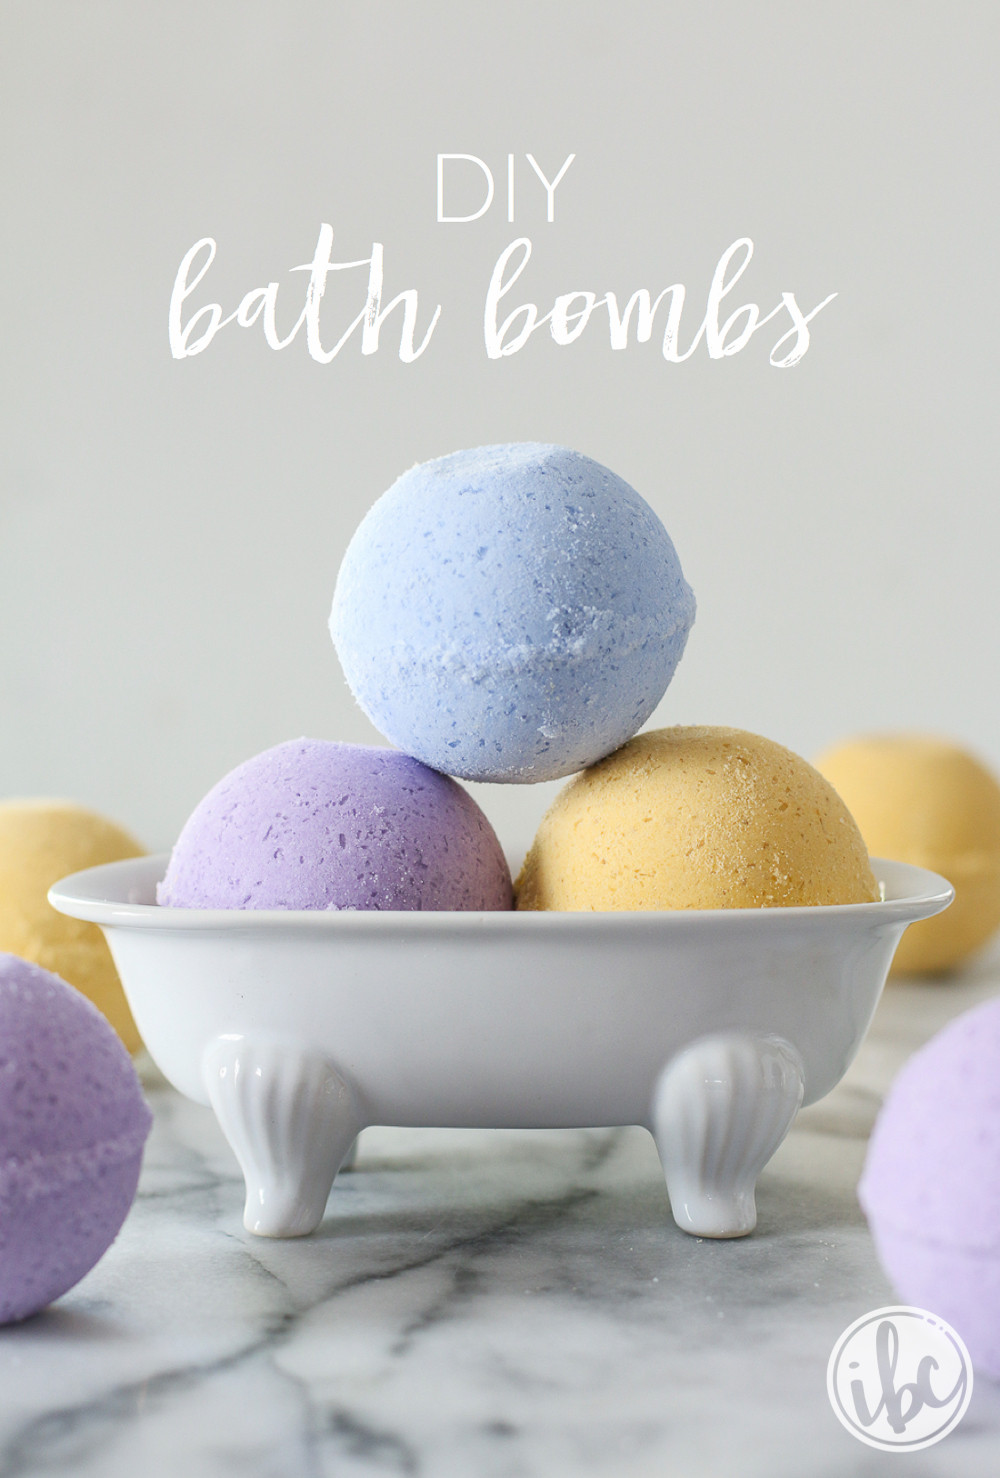 Best ideas about Bath Bombs DIY . Save or Pin DIY Bath Bombs Inspired by Charm Now.